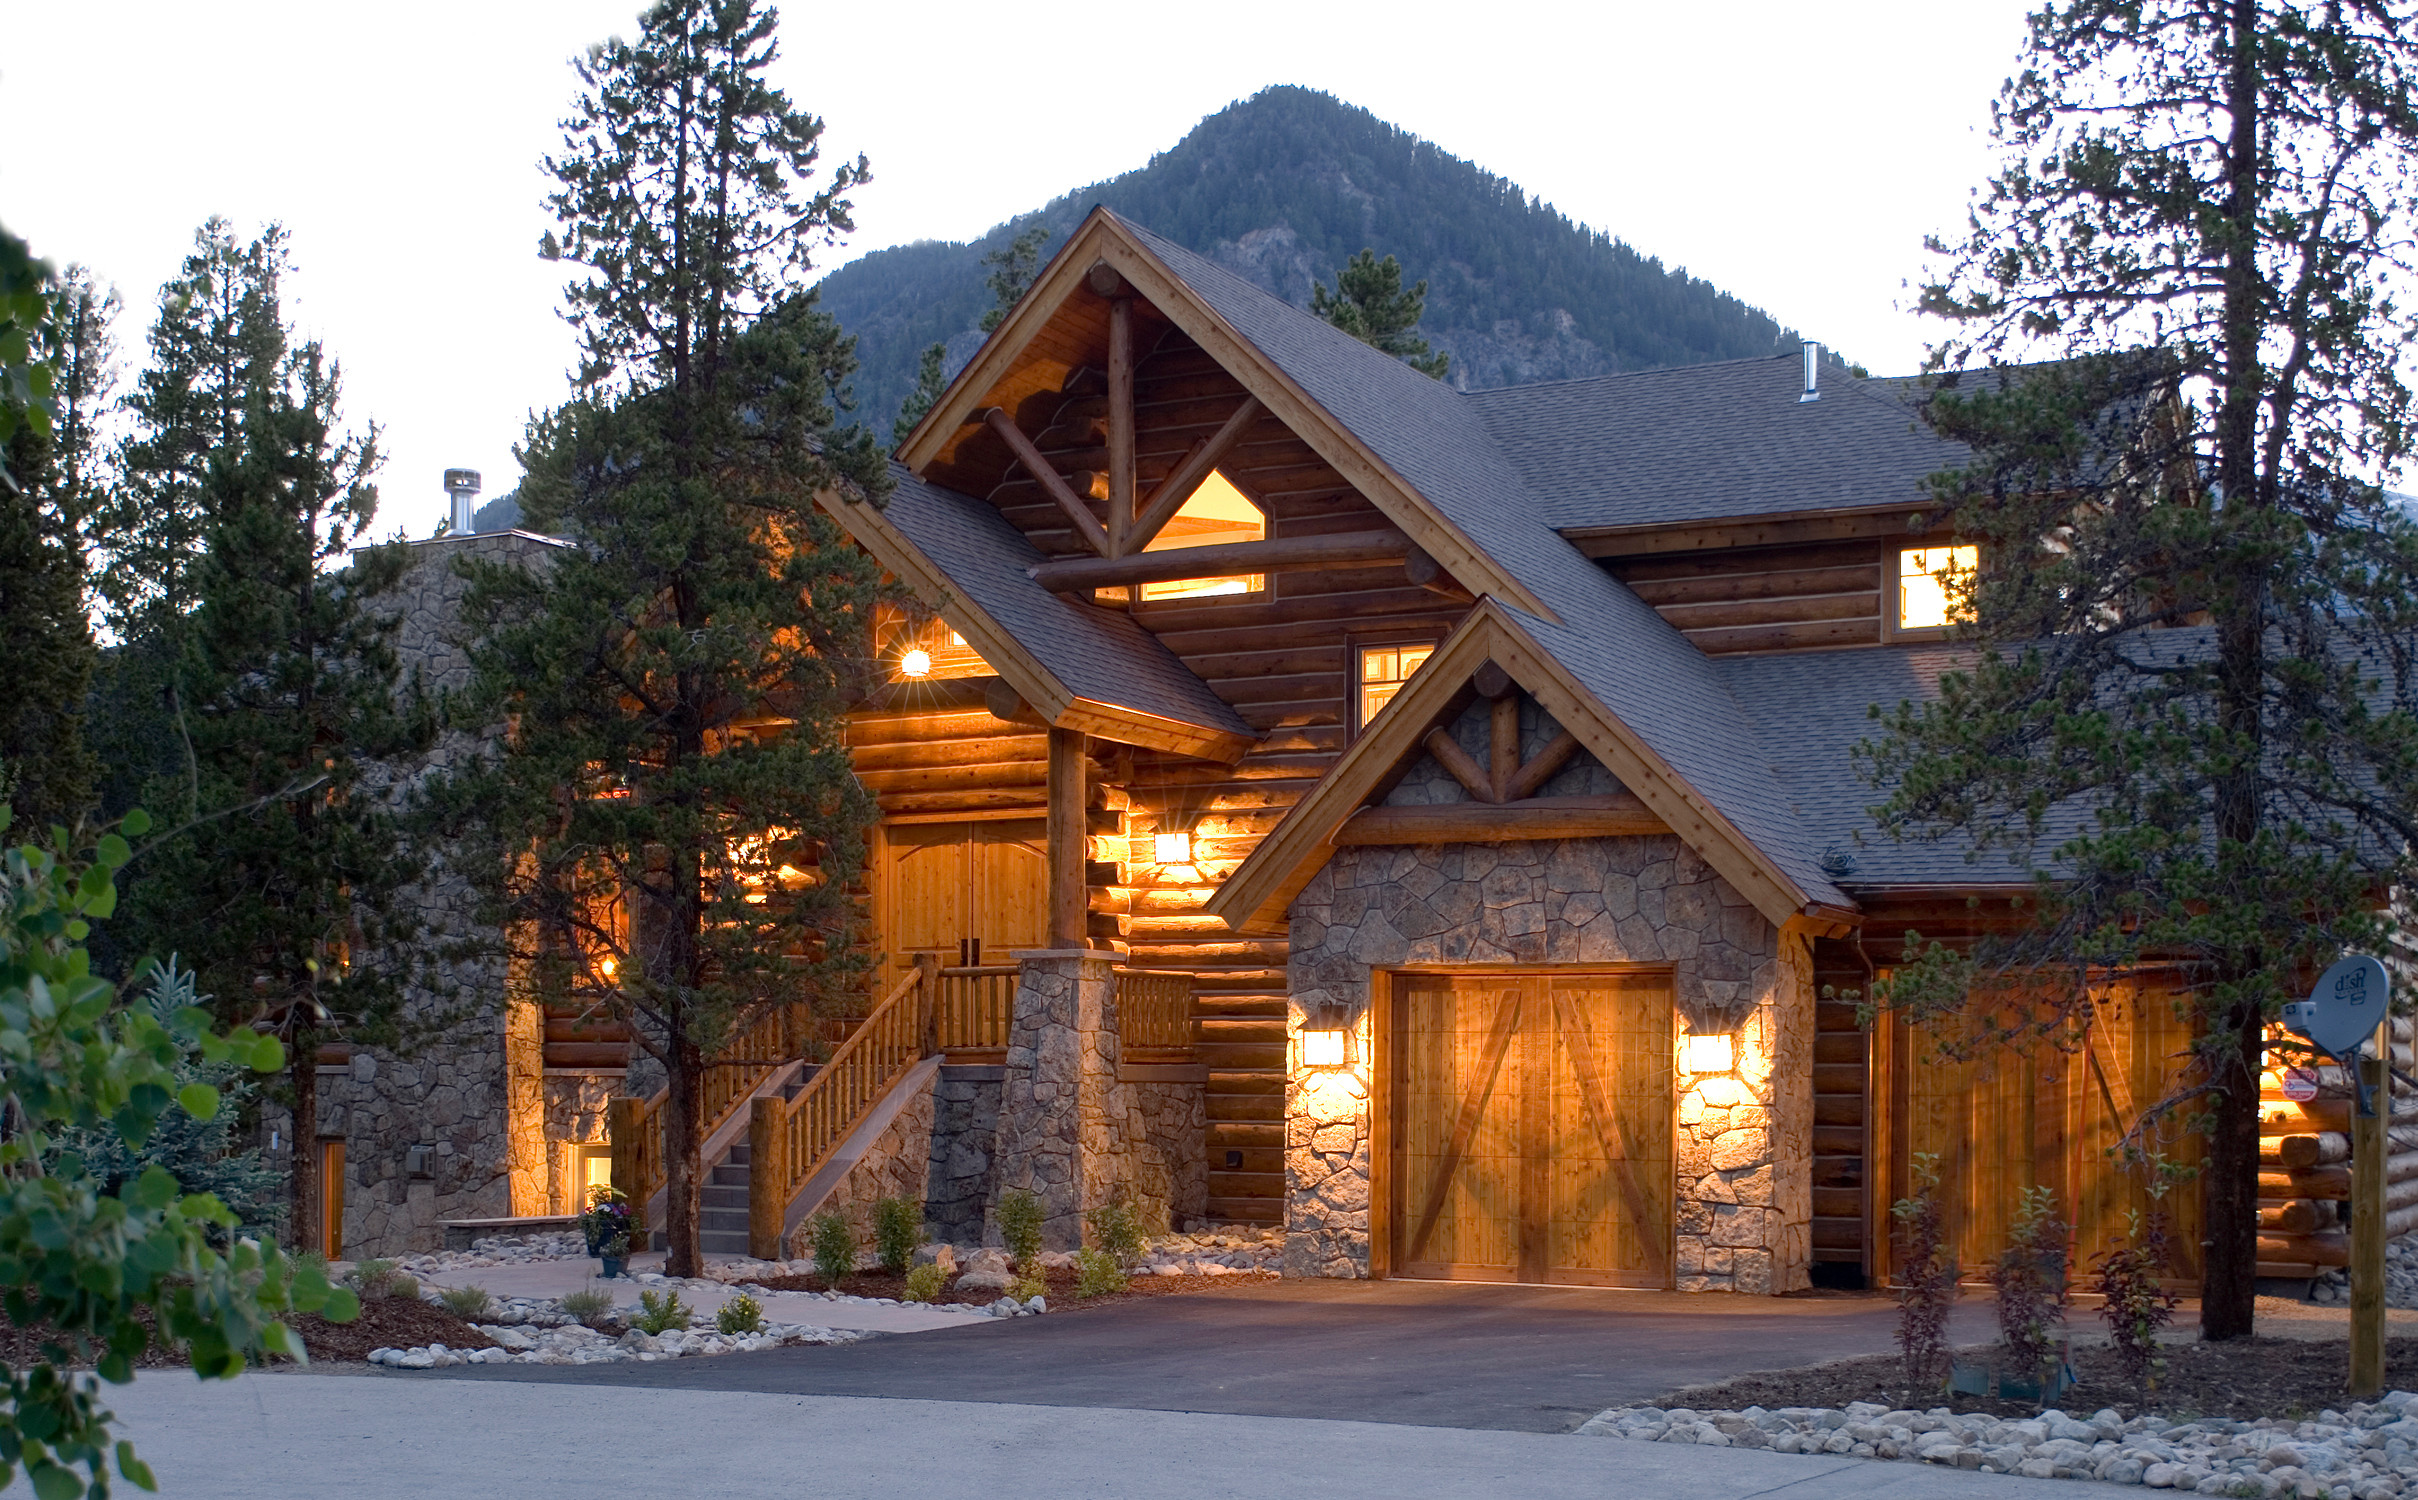 75 Beautiful Rustic Exterior Home Pictures Ideas March 2021 Houzz